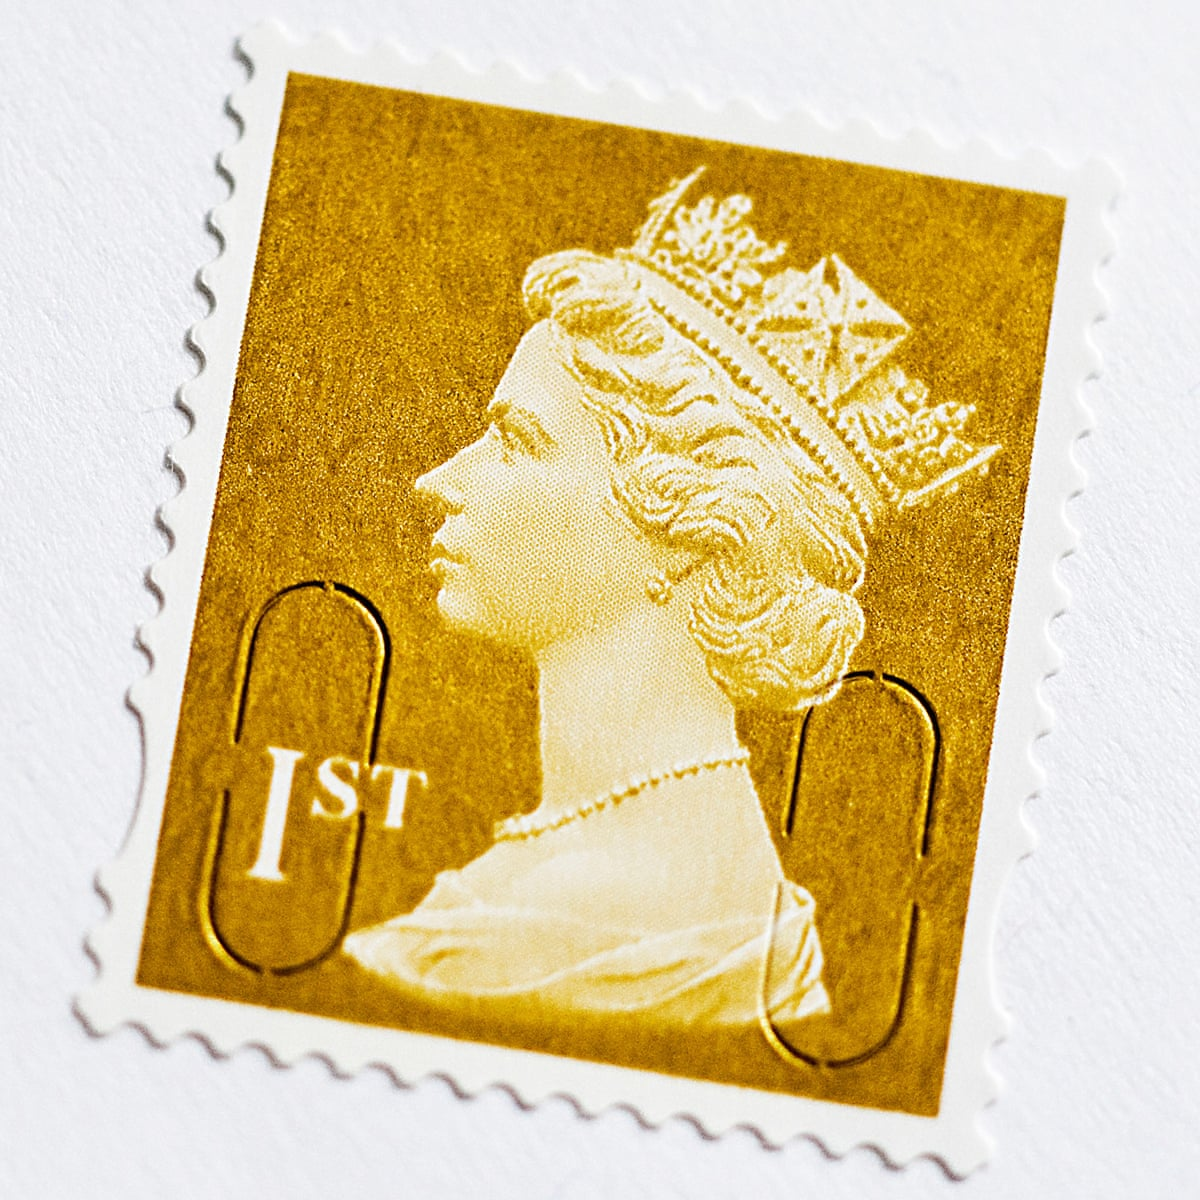 I Think It S About 6 Do You Know The Cost Of A First Class Stamp Consumer Affairs The Guardian,Colors That Go With Light French Gray